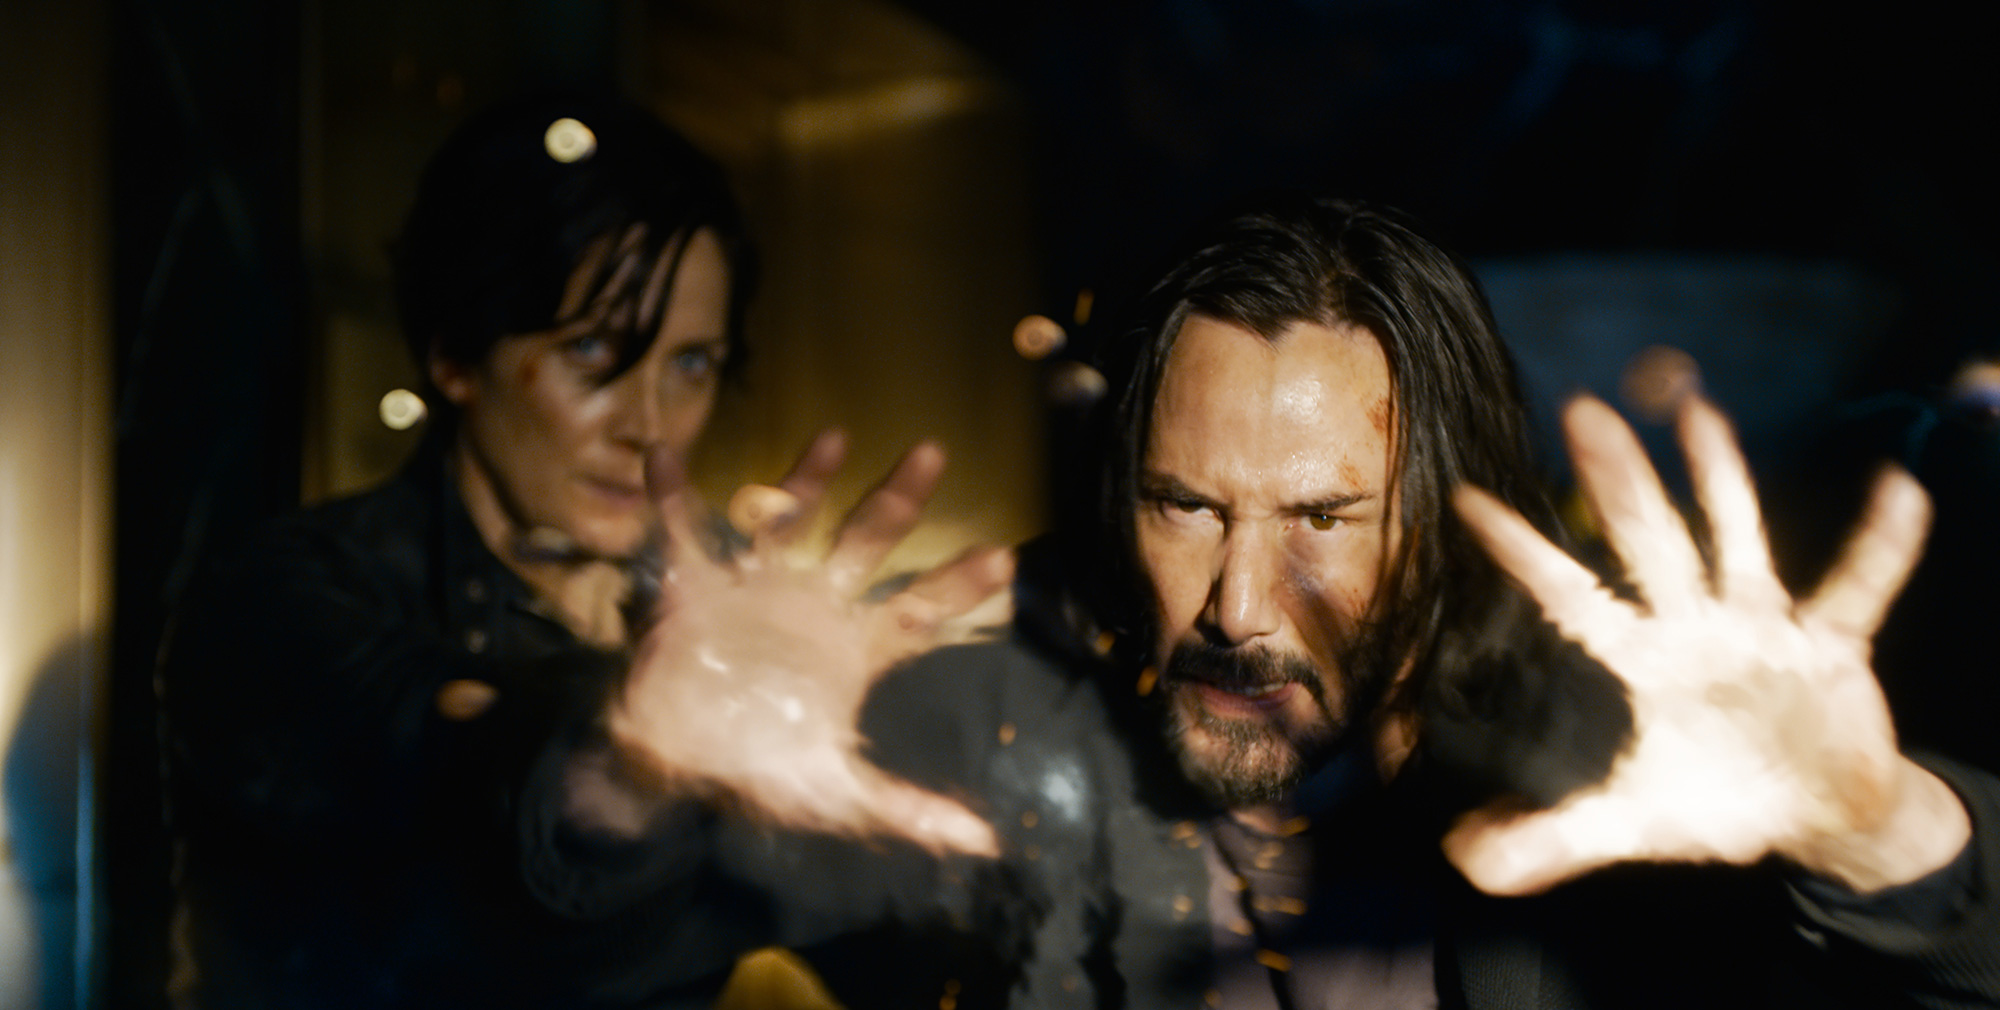 """CARRIE-ANNE MOSS as Trinity and KEANU REEVES as Neo/Thomas Anderson in Warner Bros. Pictures, Village Roadshow Pictures and Venus Castina Productions' """"THE MATRIX RESURRECTIONS,"""" a Warner Bros."""